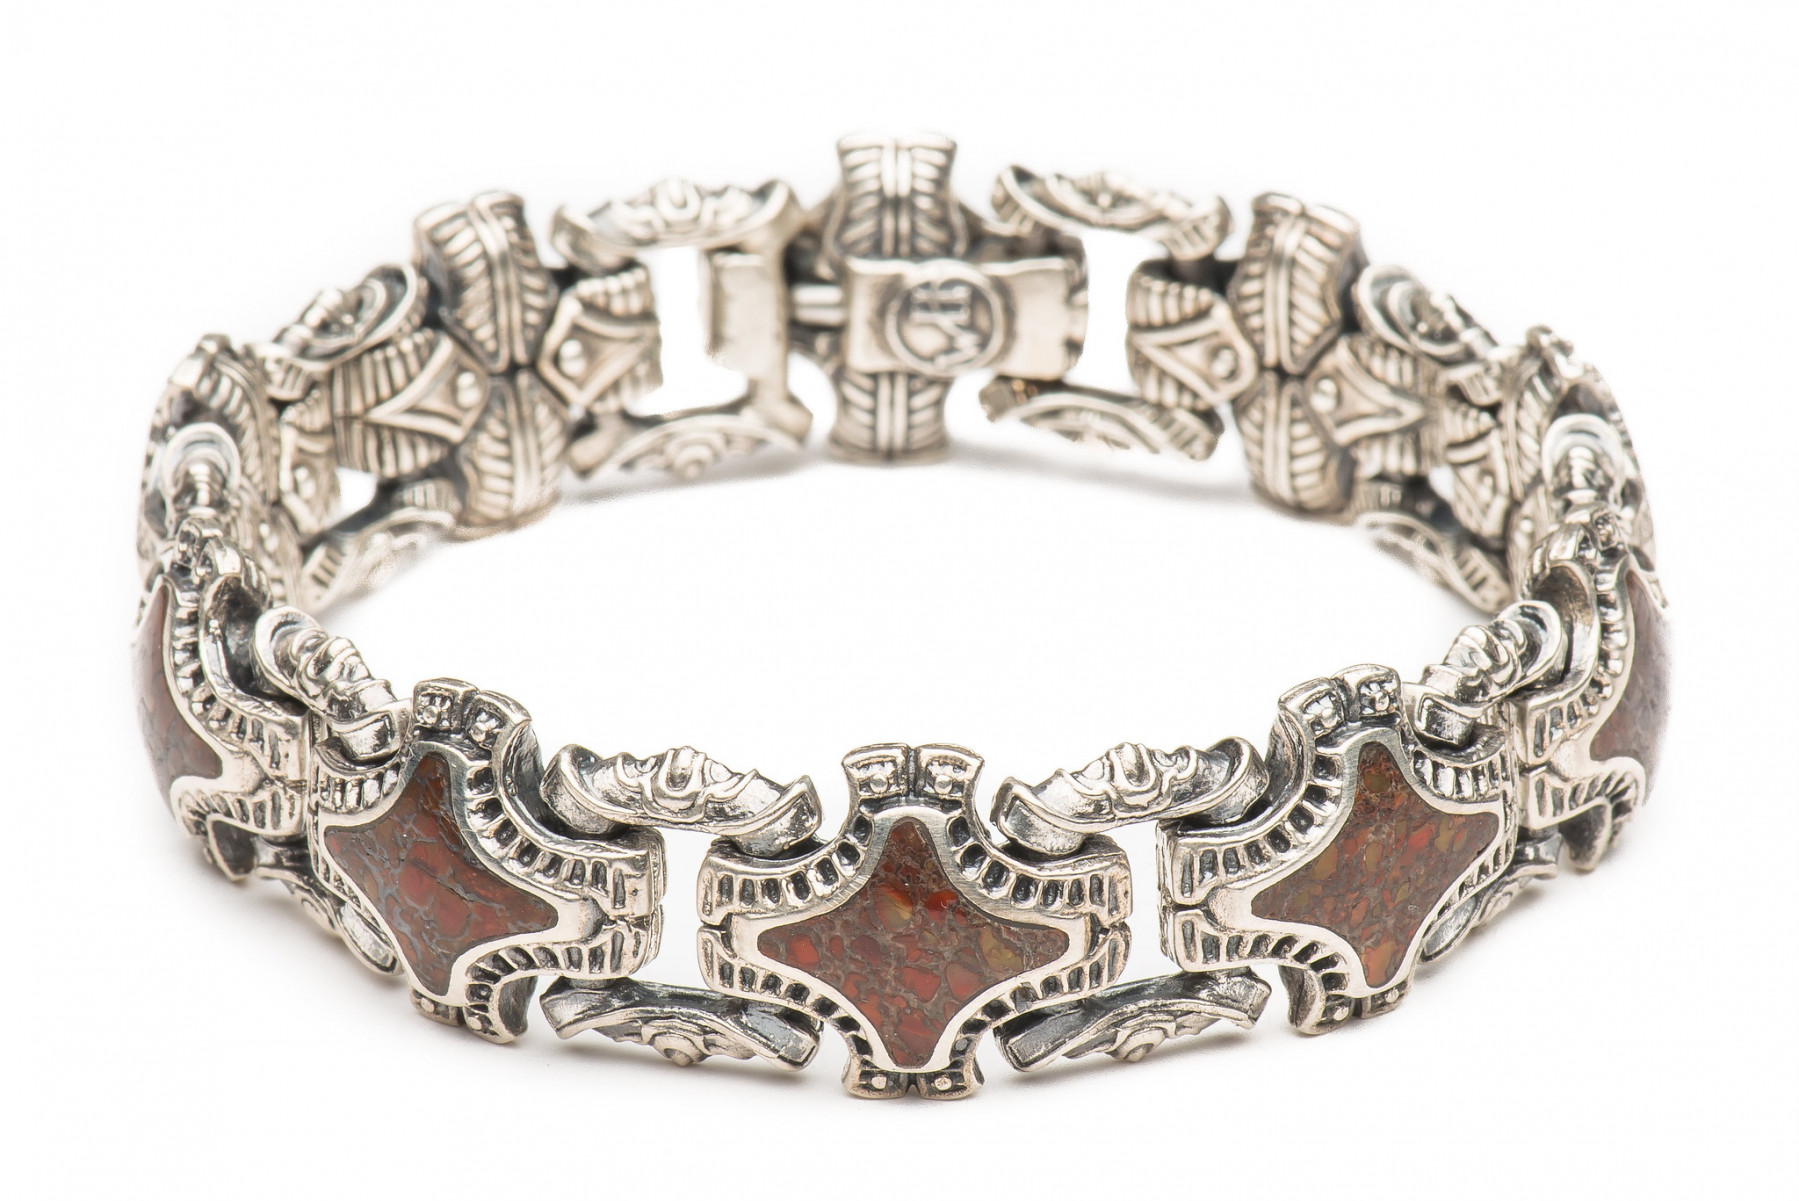 William Henry Red Fossil Silver Link Bracelet